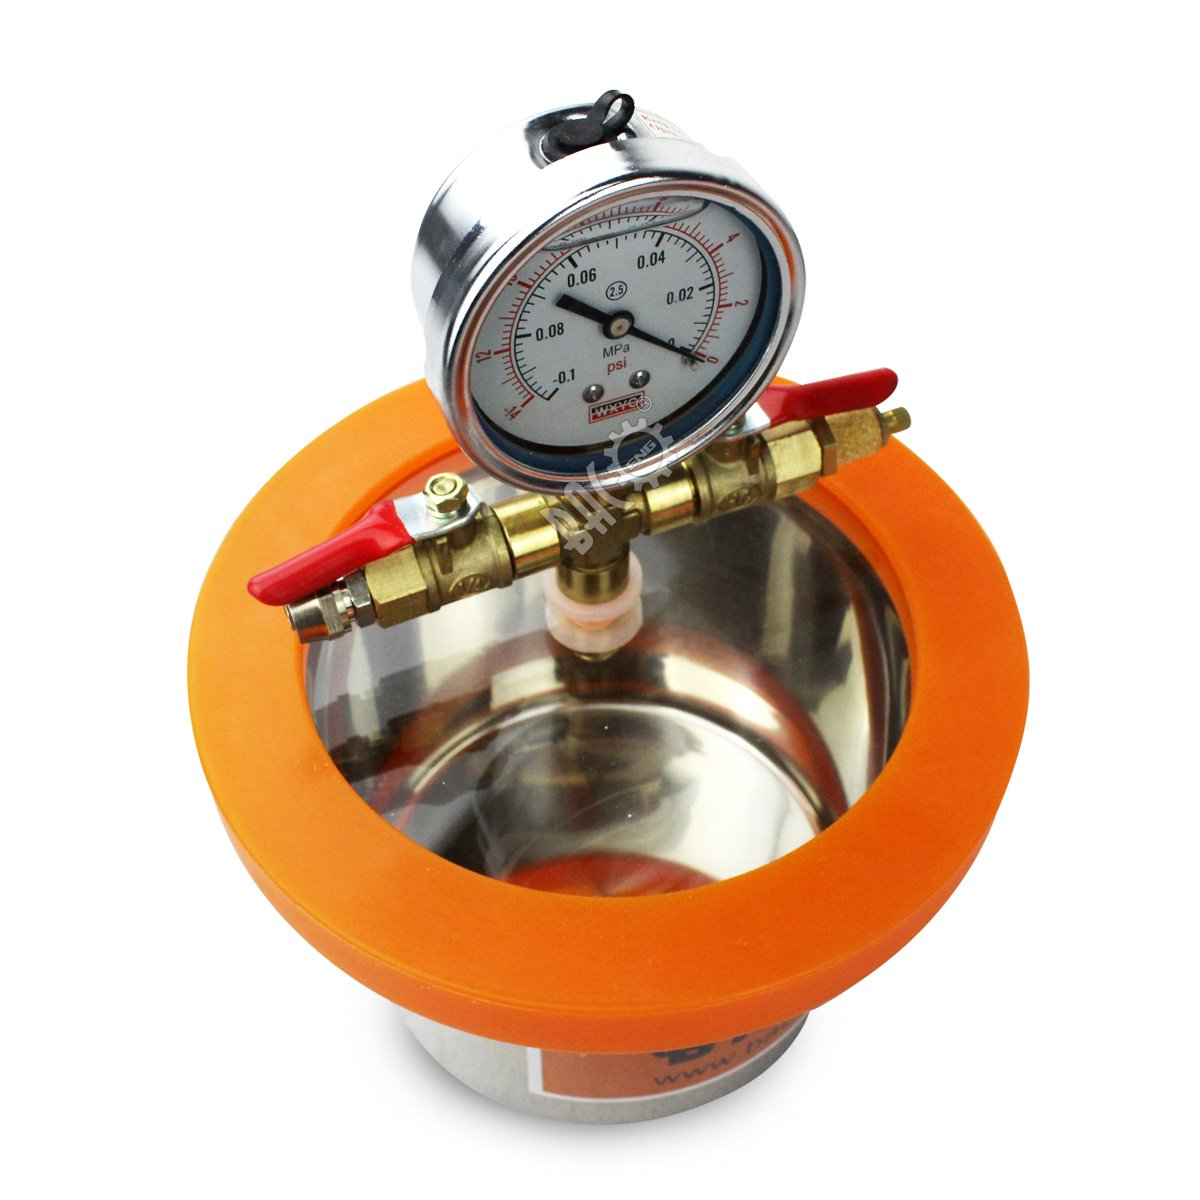 BACOENG 2 Quart Vacuum Chamber Kit with 3.6 CFM 1 Stage Vacuum Pump HVAC by BACOENG (Image #4)